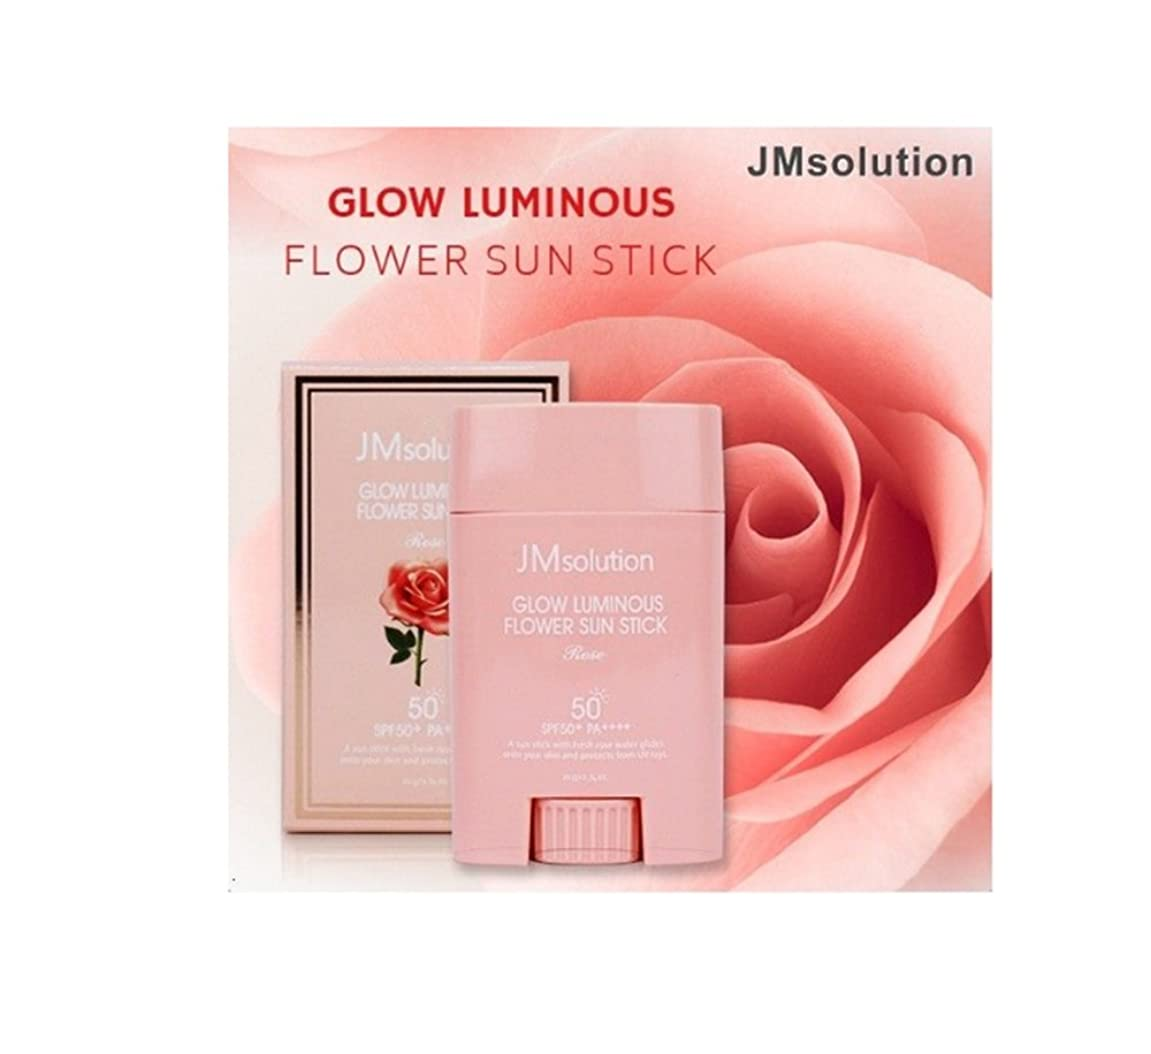 変わる準拠名前JM Solution Glow Luminous Flower Sun Stick Rose 21g (spf50 PA) 光る輝く花Sun Stick Rose